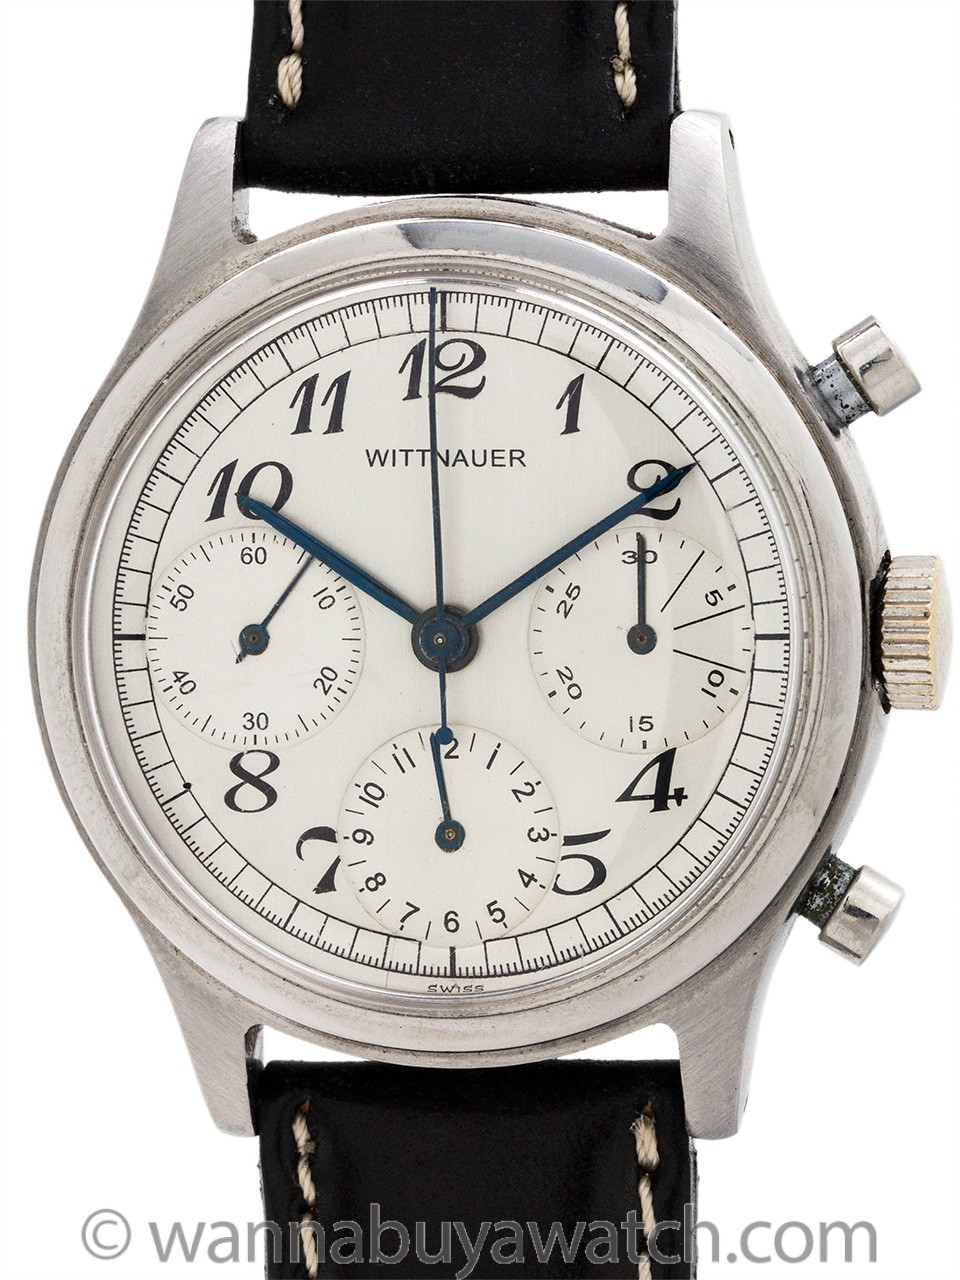 Wittnauer 3 Registers Chronograph Stainless Steel circa 1950's